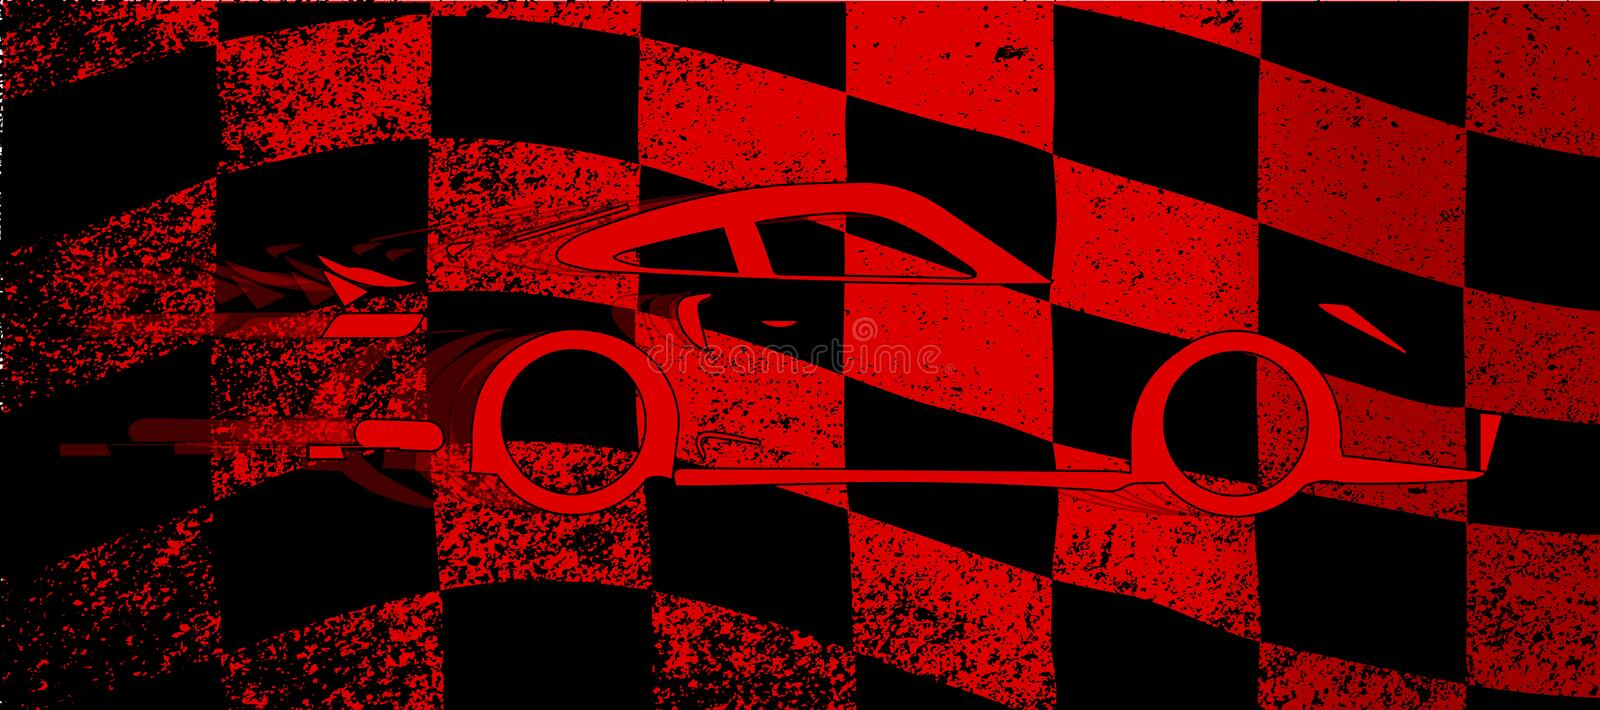 Fast Car Chequered Flag stock illustration